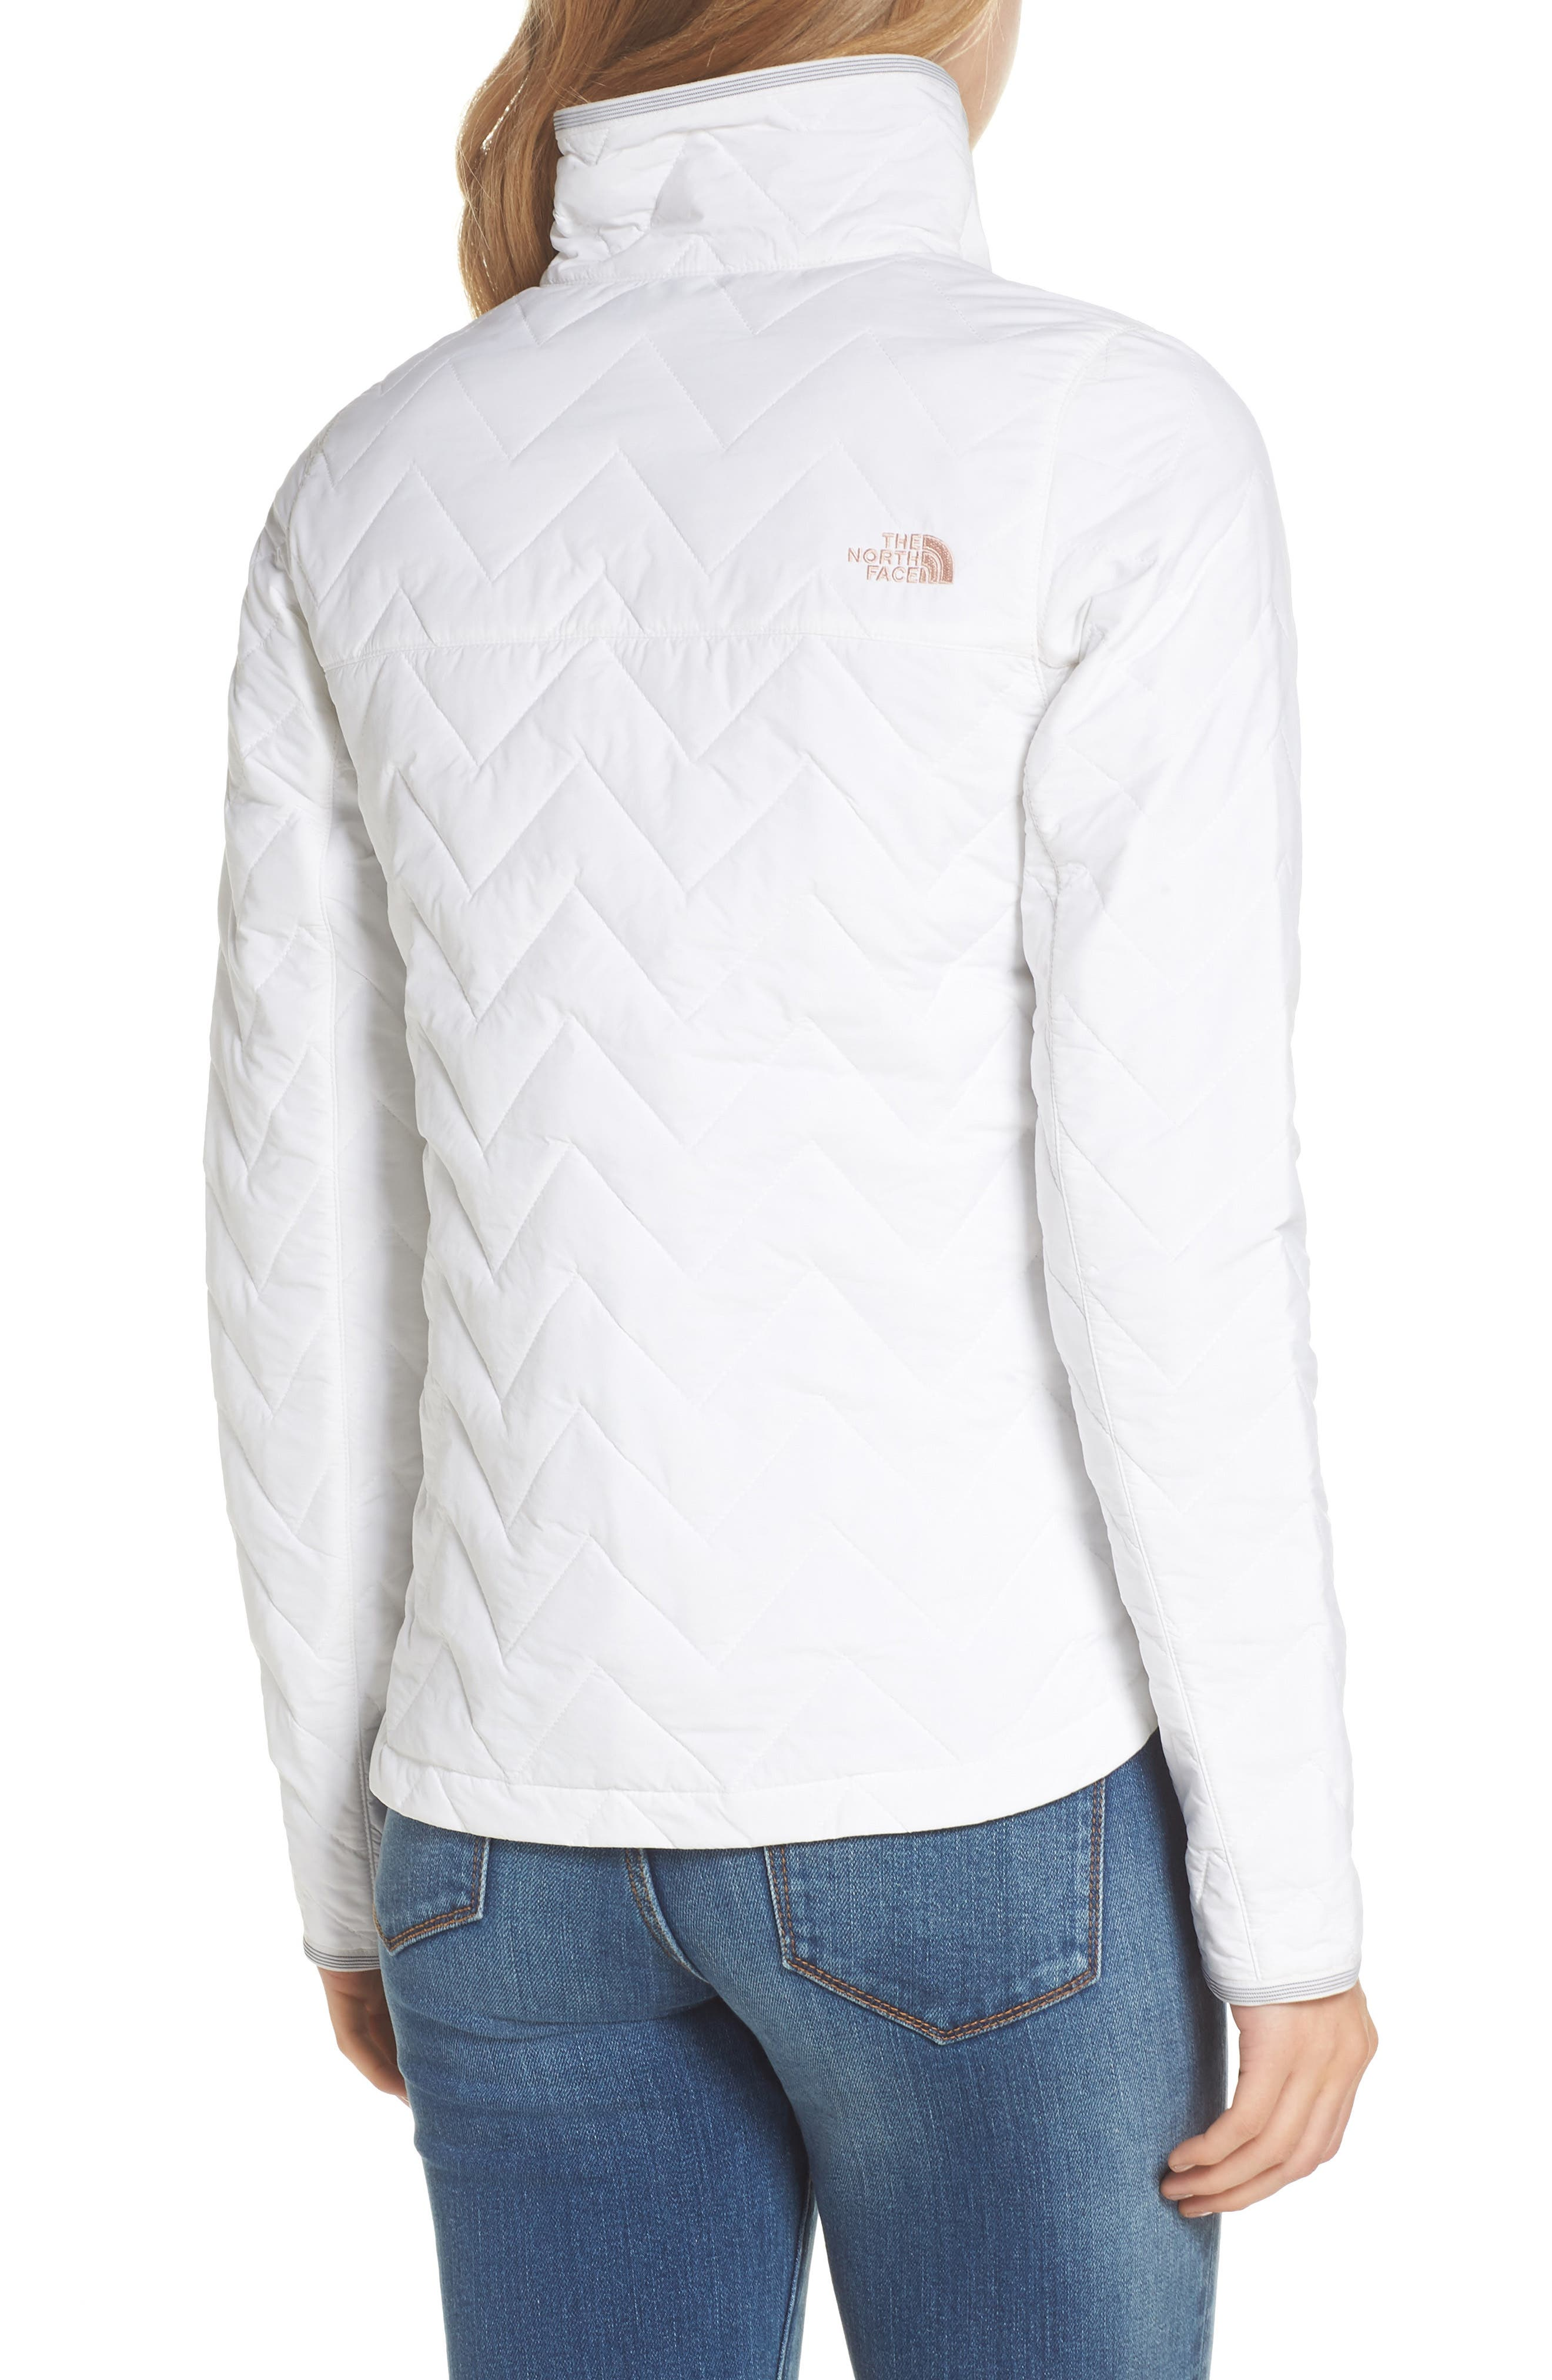 Westborough Insulated Jacket,                             Alternate thumbnail 2, color,                             BRIGHT WHITE